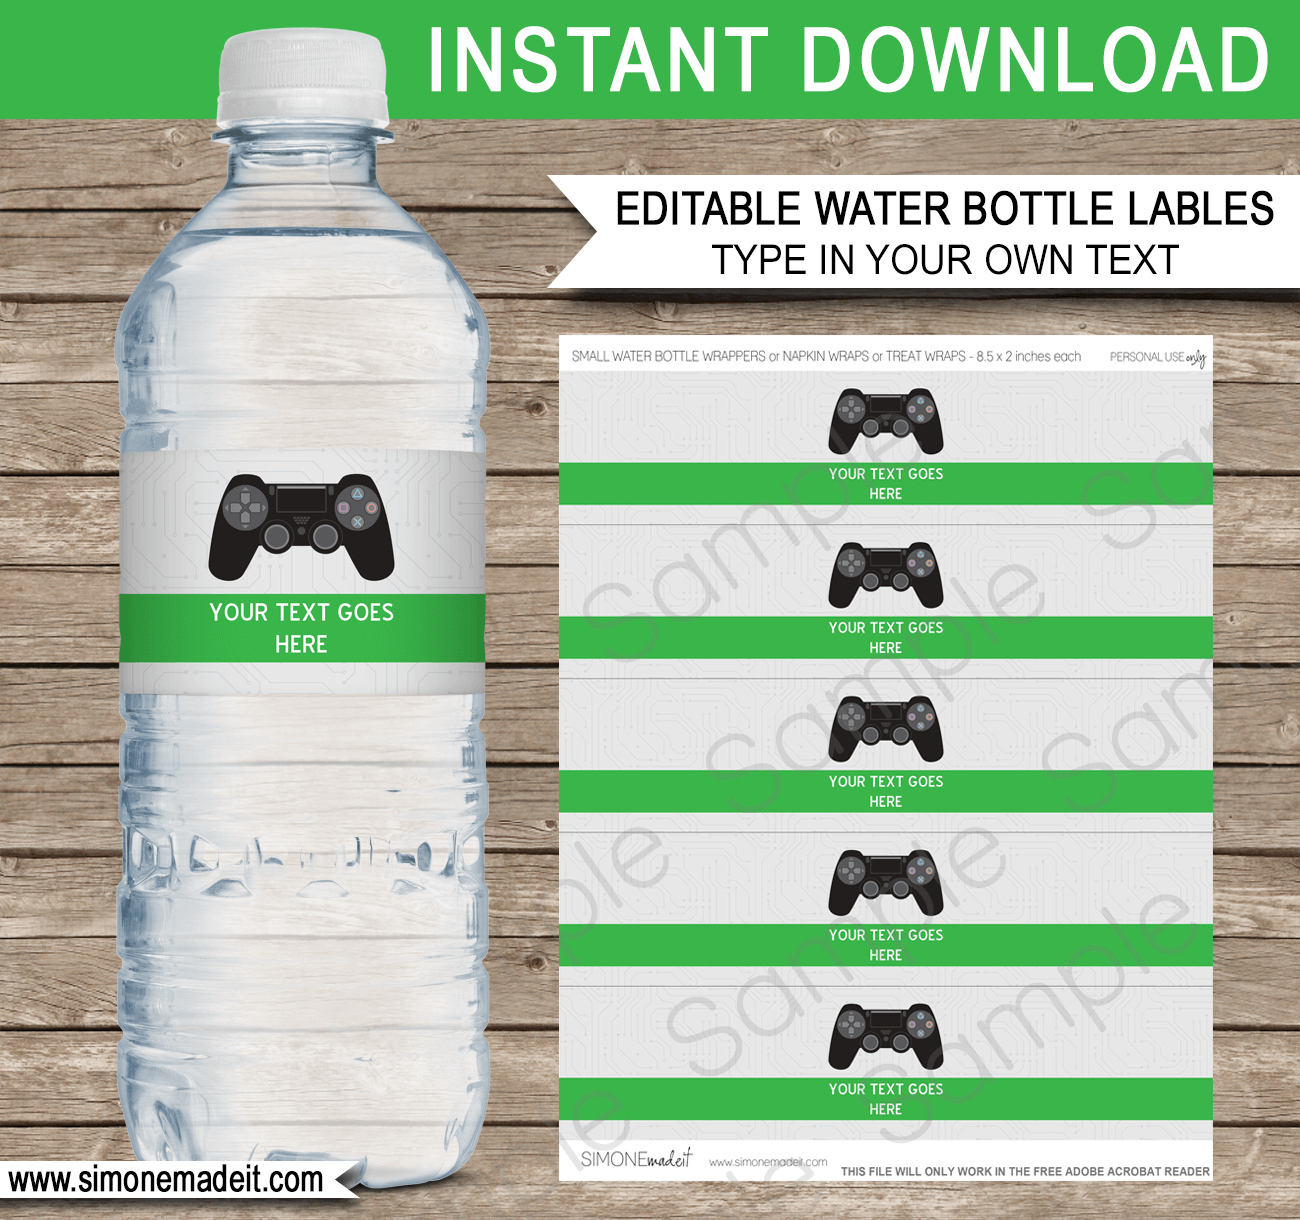 Printable Playstation Party Water Bottle Labels | Video Game Theme Birthday Party Template | Black Playstation Controller | Gamer | Napkin Wraps | Treat Wraps | INSTANT DOWNLOAD via simonemadeit.com